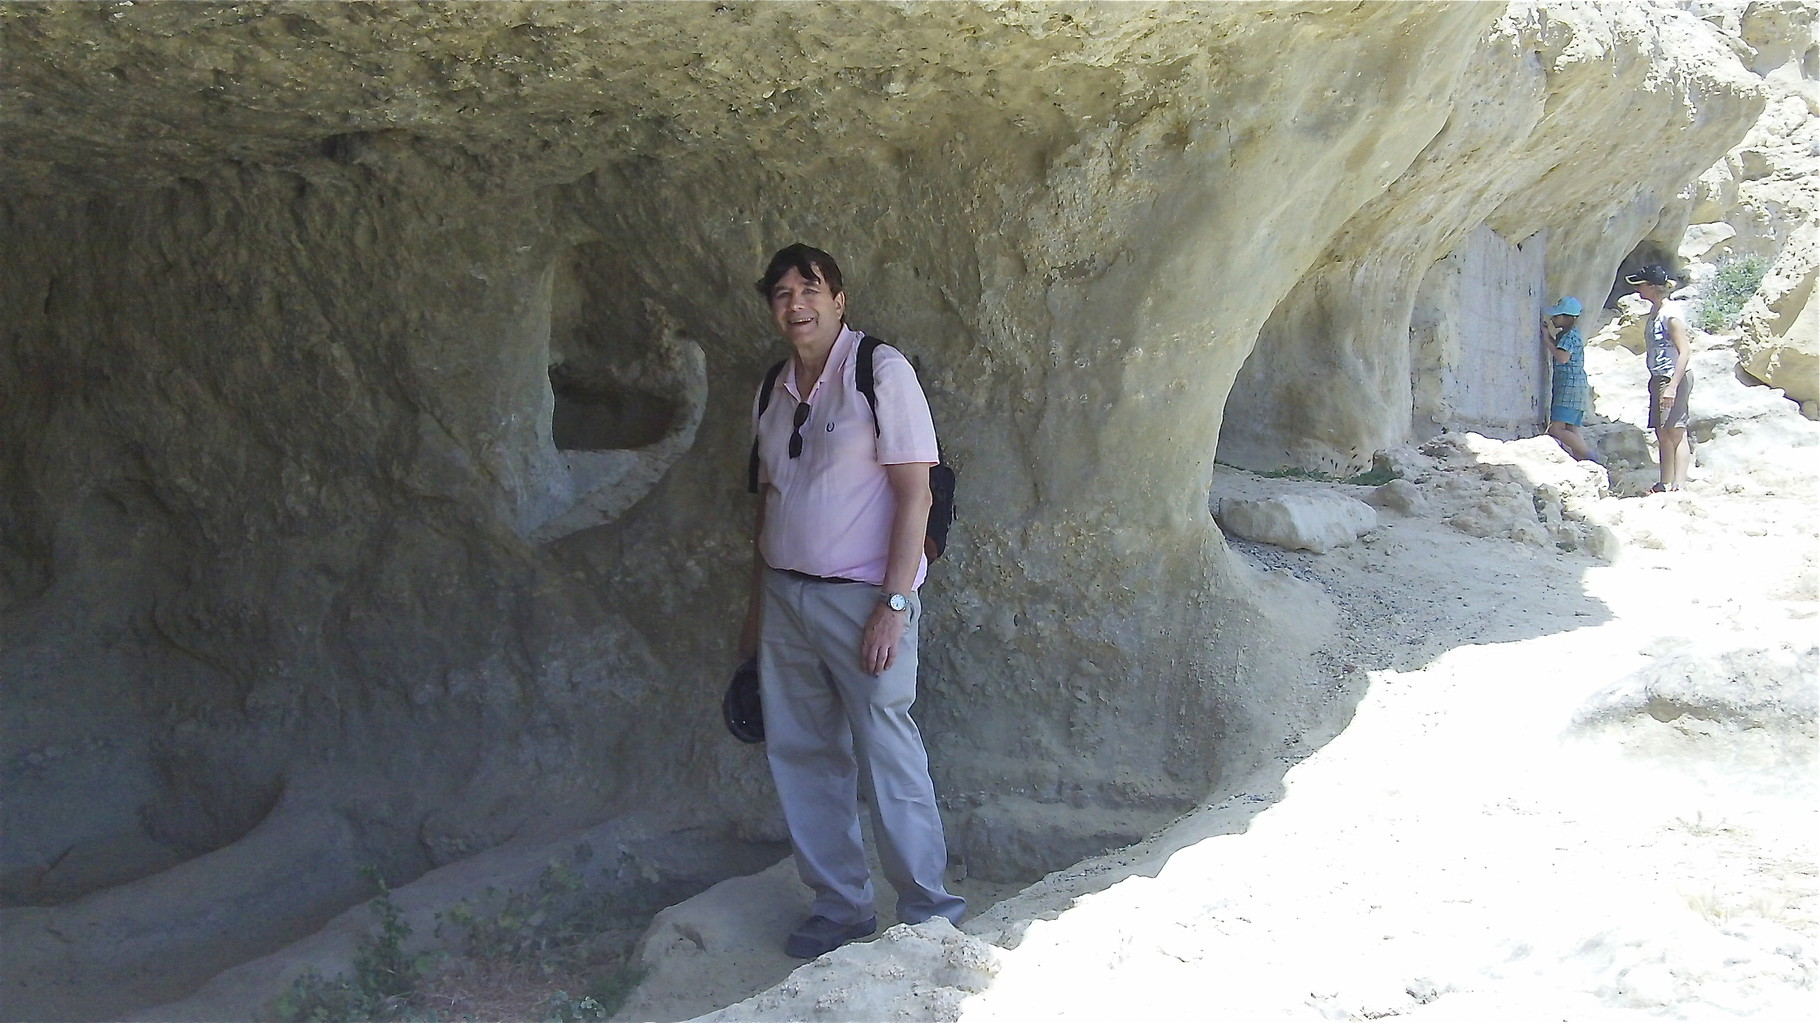 John on the Matala cliffs and caves; you can see the Roman grave sites delineated in the cave.